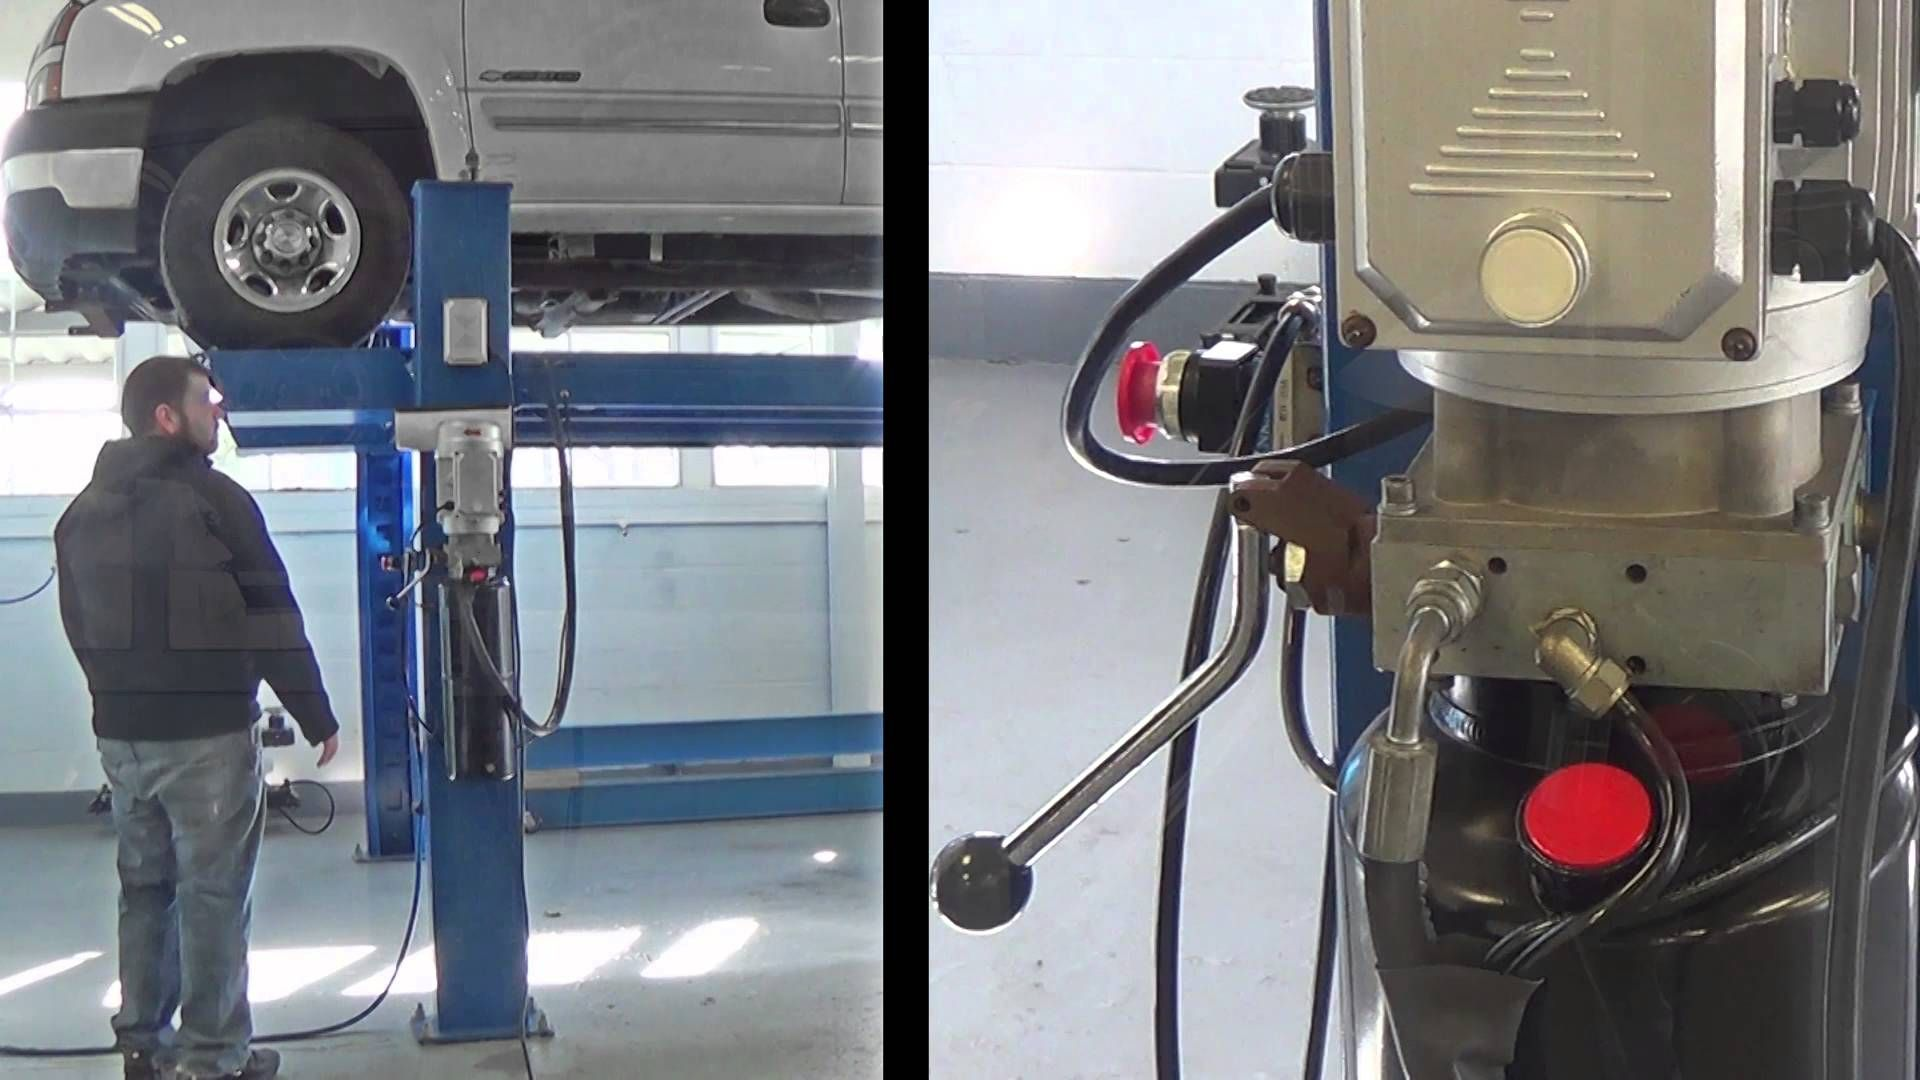 Pin by Greg Smith on Auto Equipment | Four post lift, 4 post